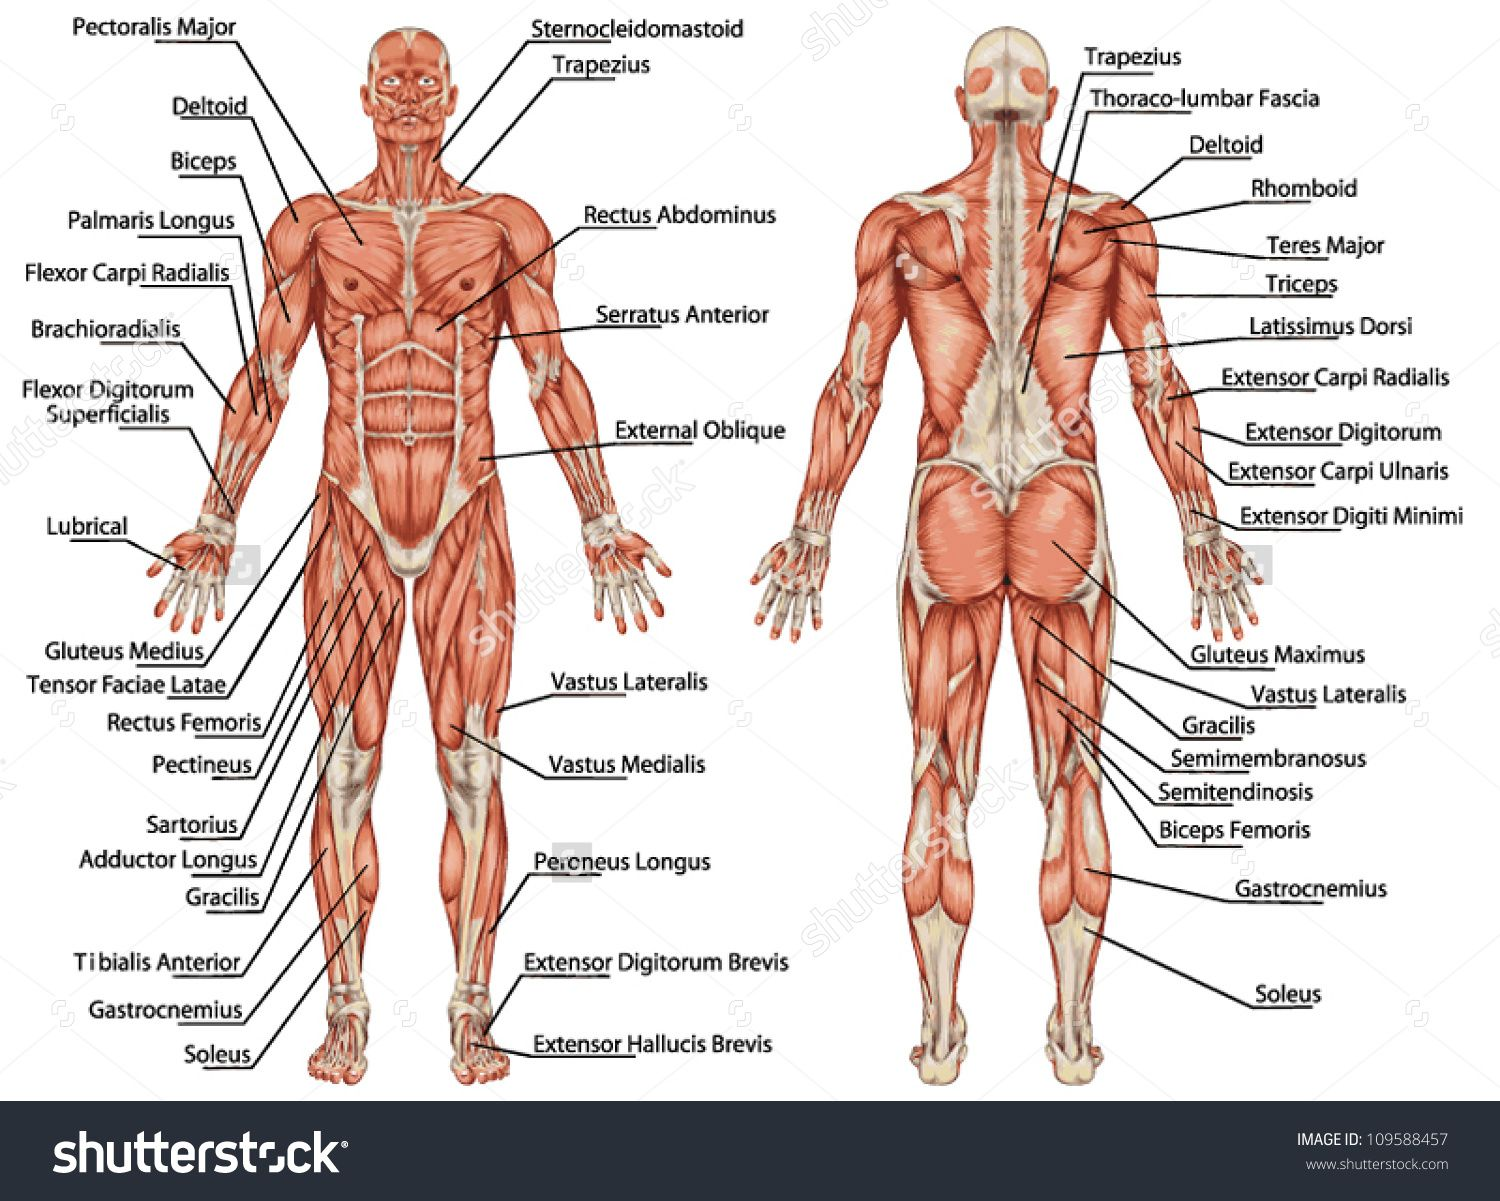 Image result for muscle diagram of male body | F17 MENS | Pinterest ...